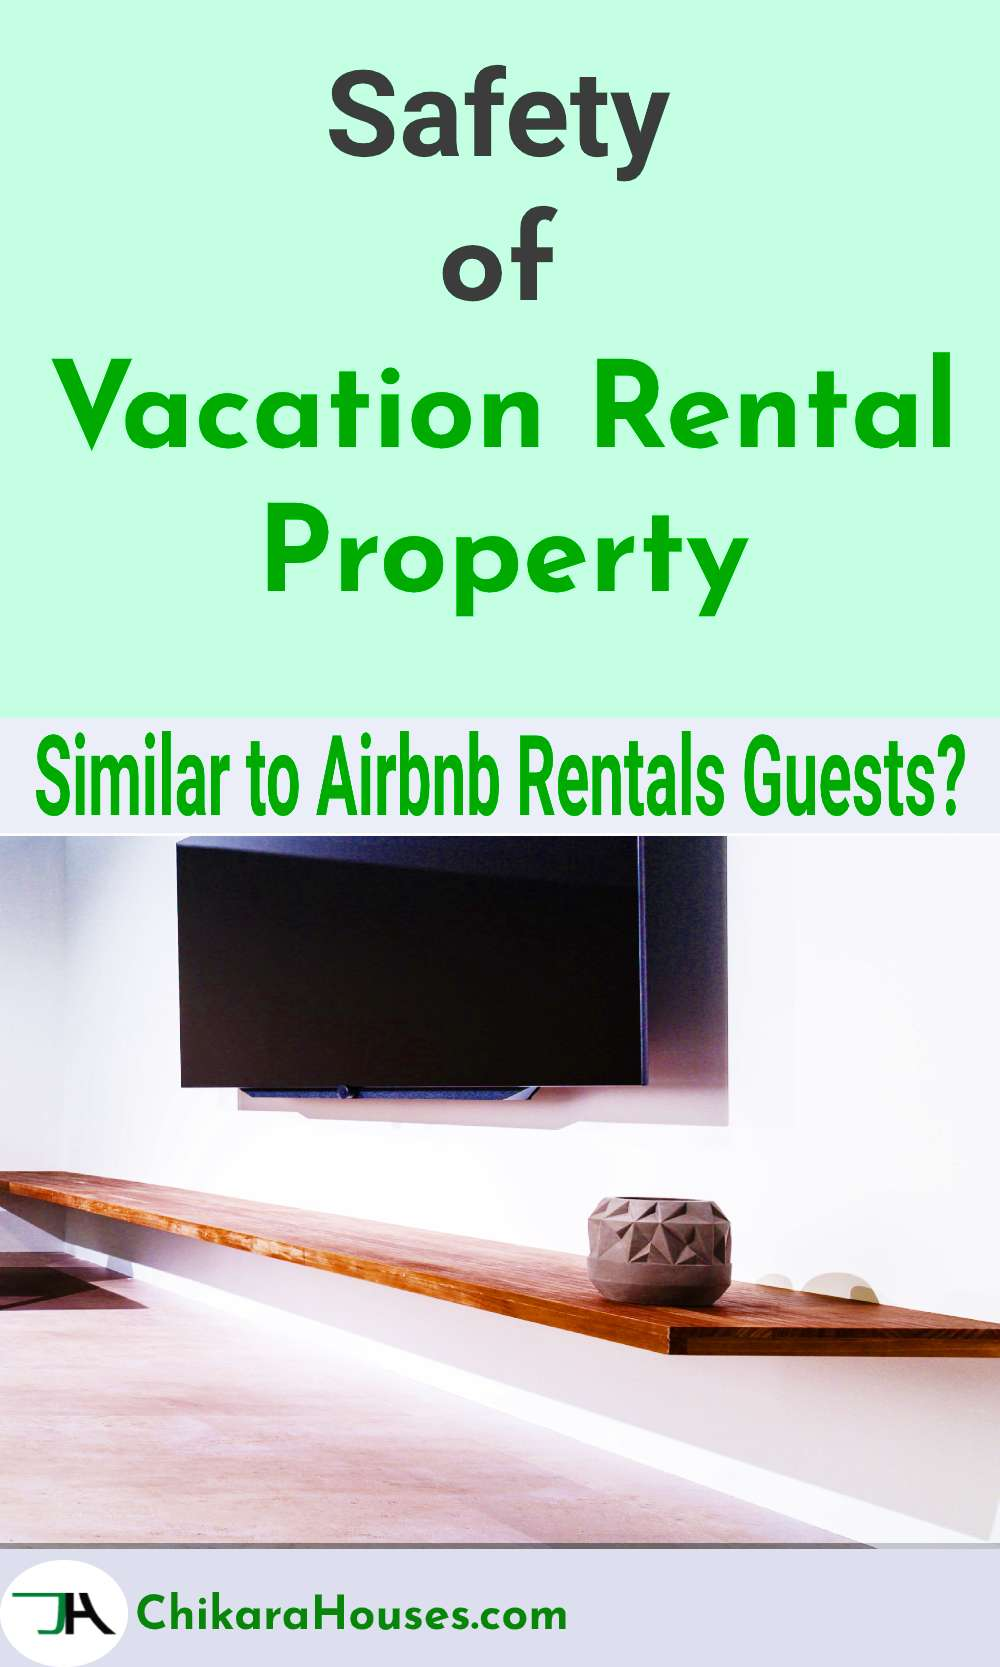 Safety, vacation rental property, airbnb rental guests